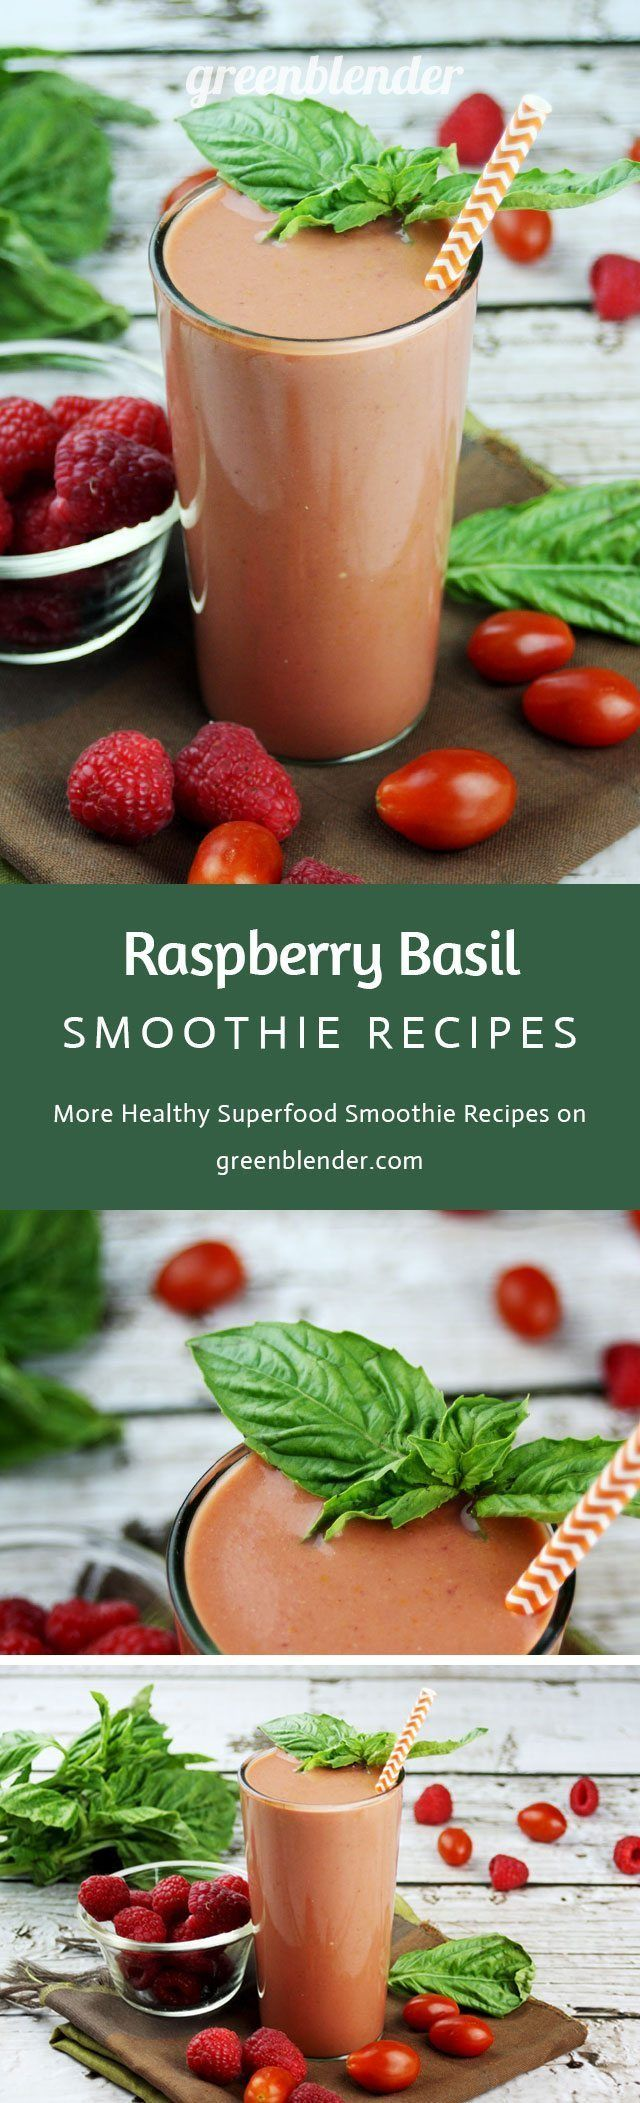 Raspberry Basil Healthy Smoothie Recipe by Green Blender: This sweet and bright mixture contains heart-healthy walnuts, lycopene-rich tomatoes, and superfood goji berries. The immune system-boosting goji berries (also known as wolf berries!) come from China, Mongolia, and the Himalayas. They contain an antioxidant called zeaxanthin which can help in protecting the eyes from ultraviolet rays. Goji berries contain vitamins A and C as well as iron to help with cell renewal.